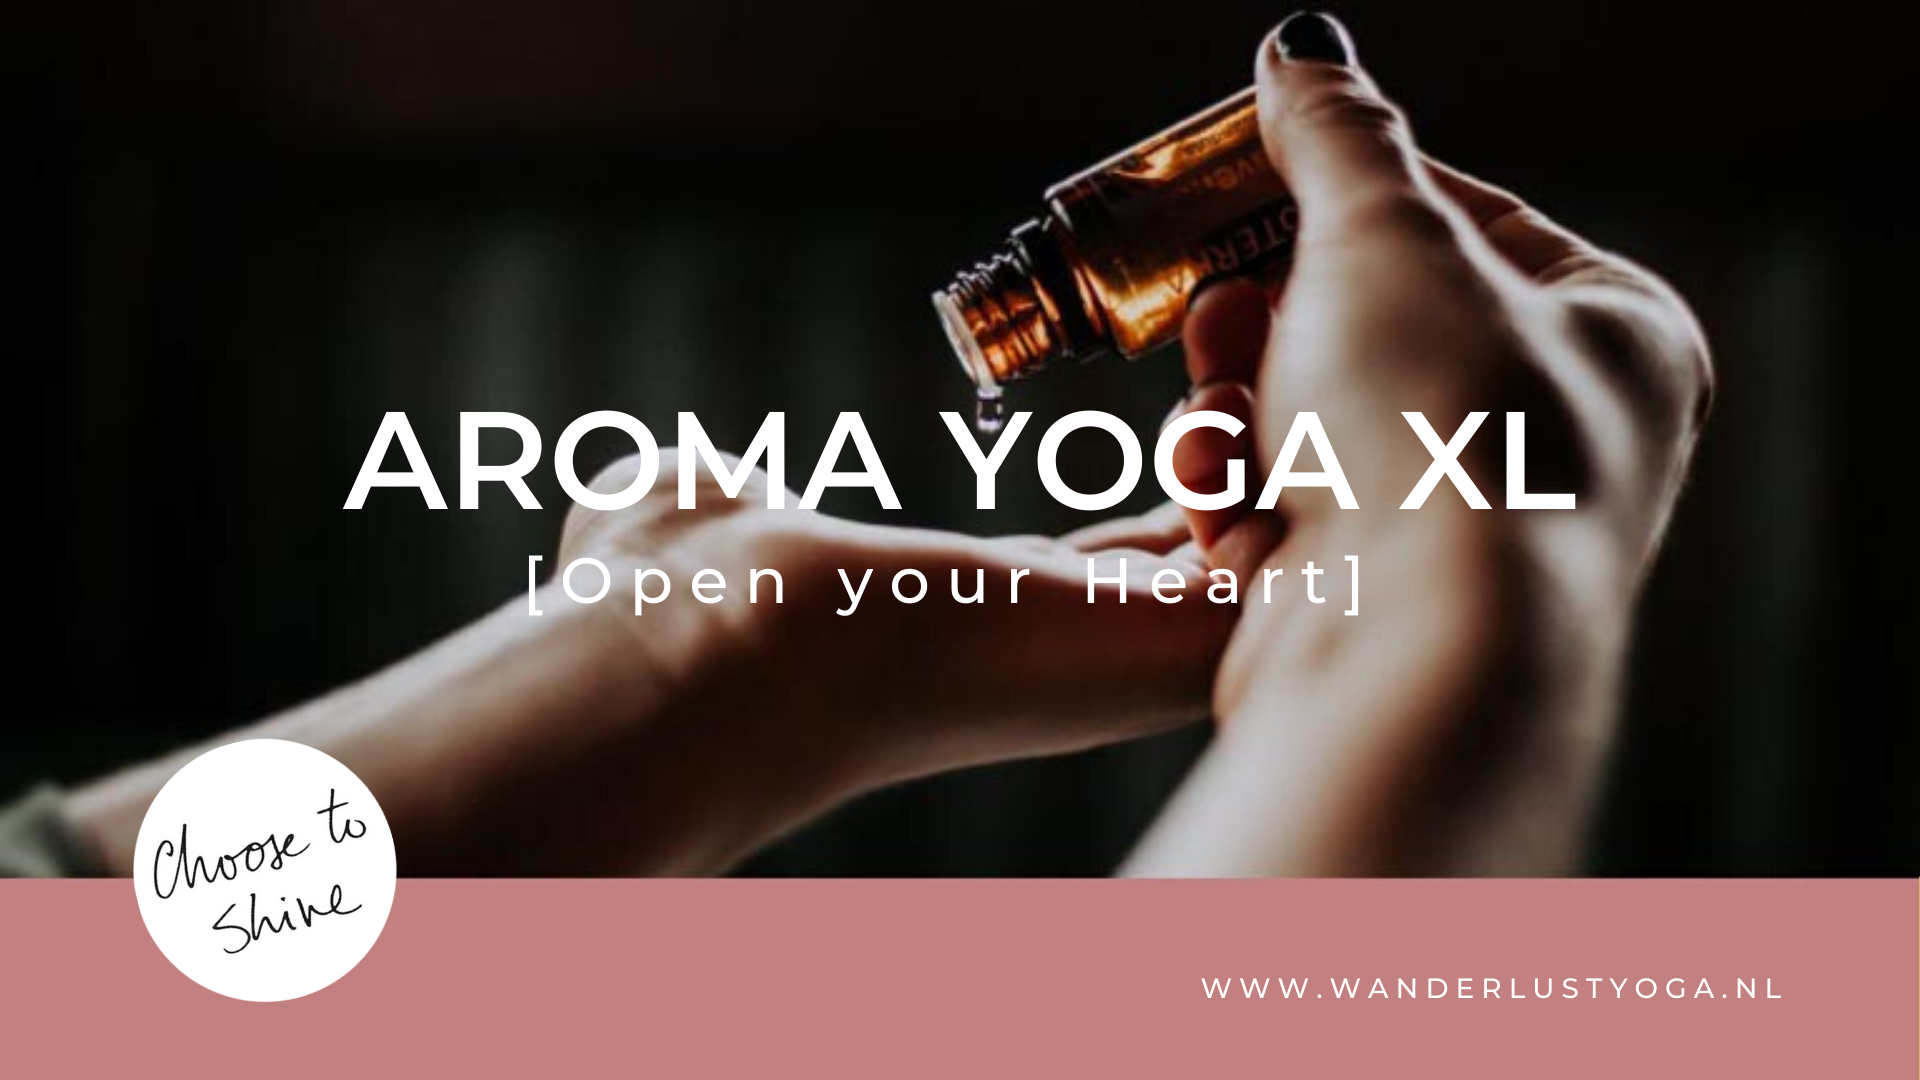 Aroma yoga workshop self-care sundays